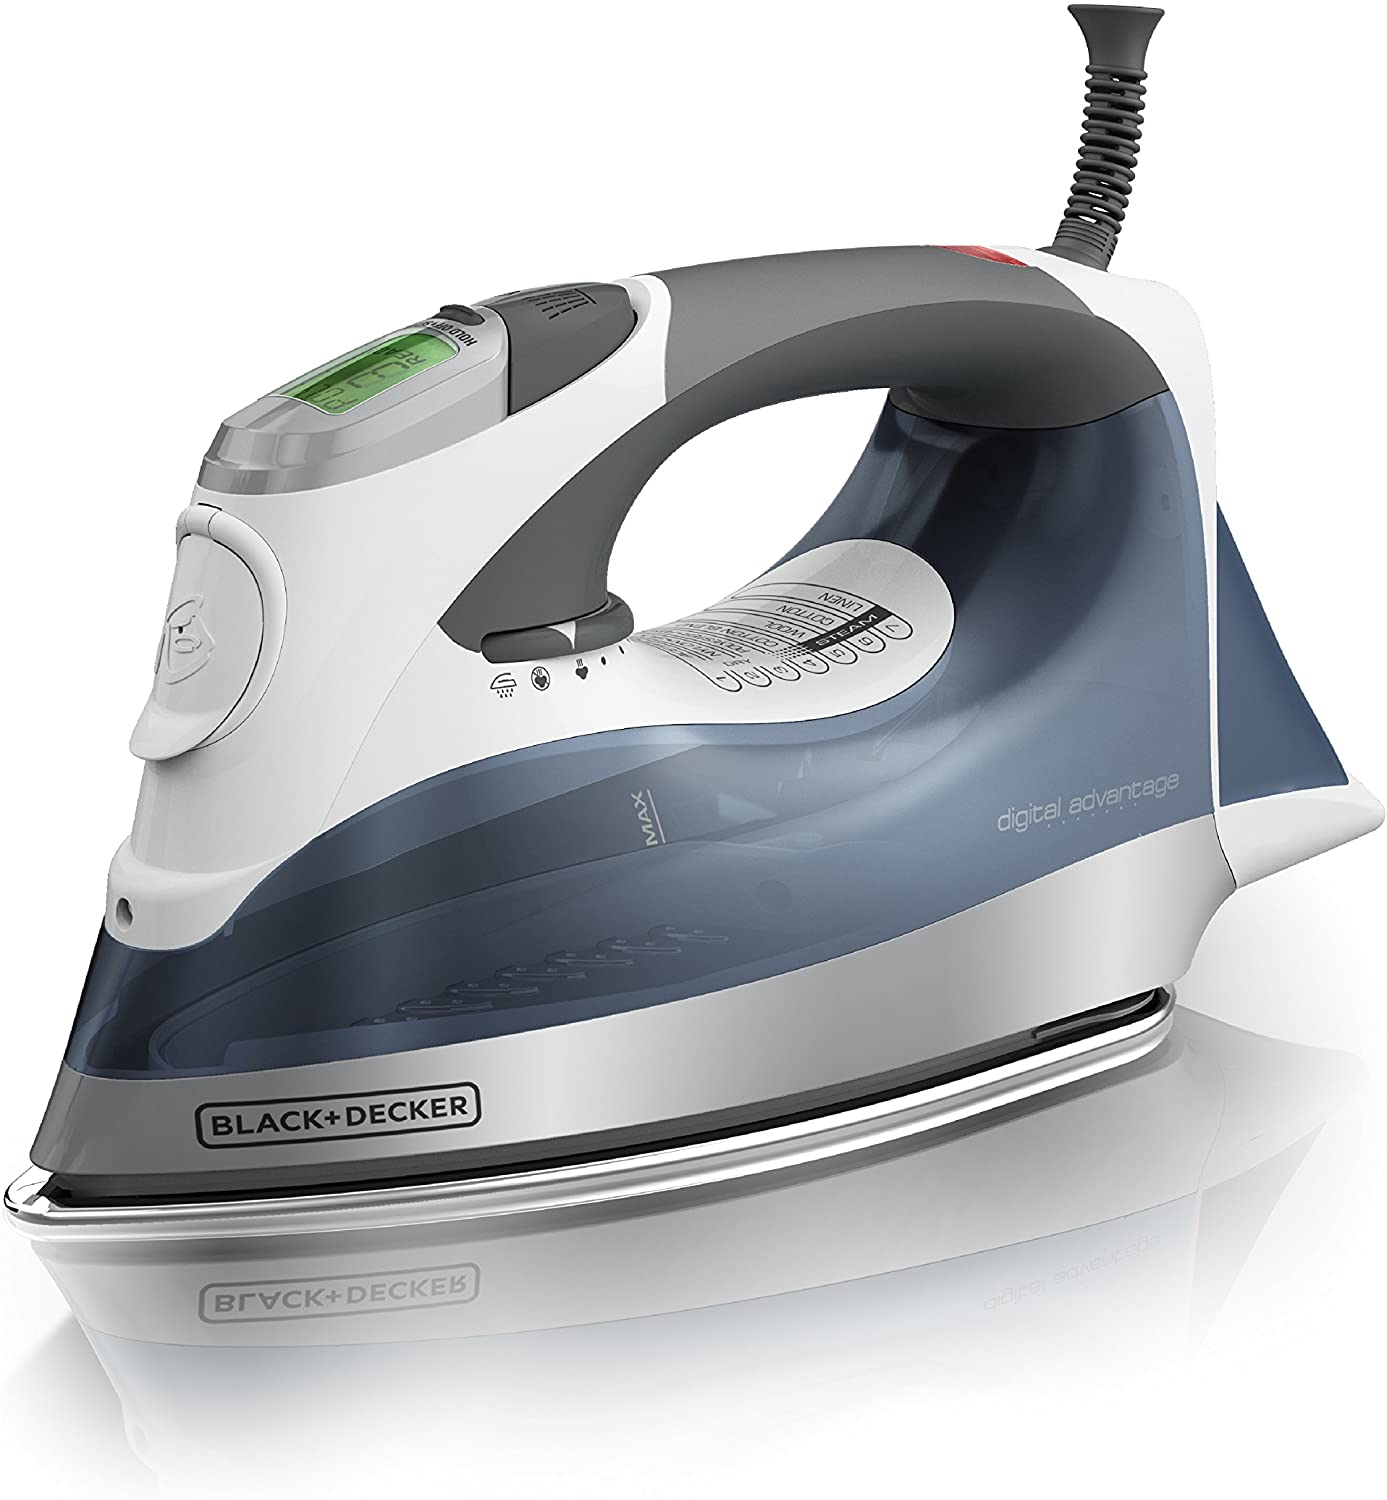 BLACK+DECKER Steam Iron, D2530